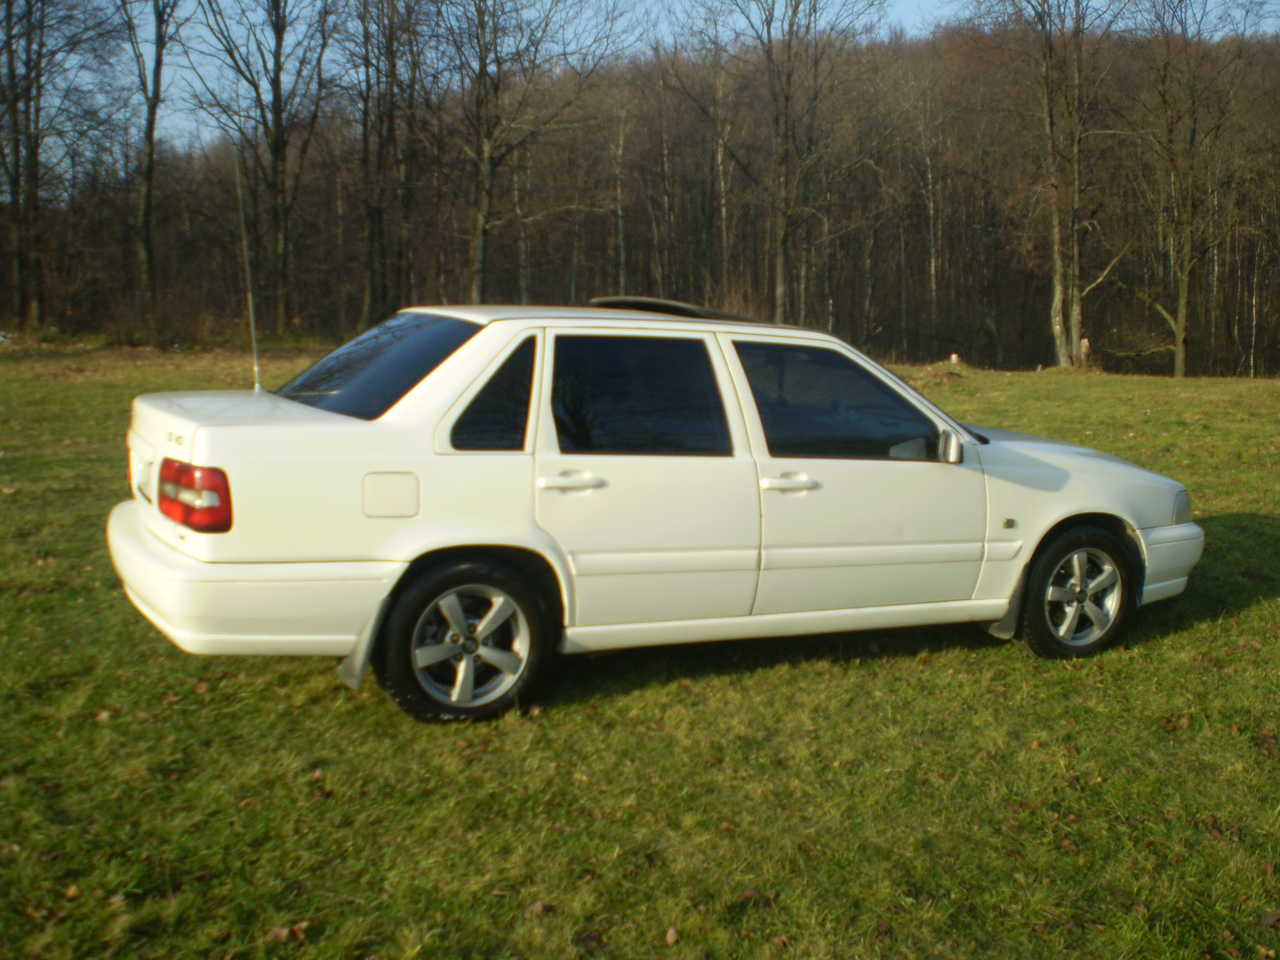 Used 1997 Volvo S70 Photos, 2500cc., Gasoline, FF, Manual For Sale